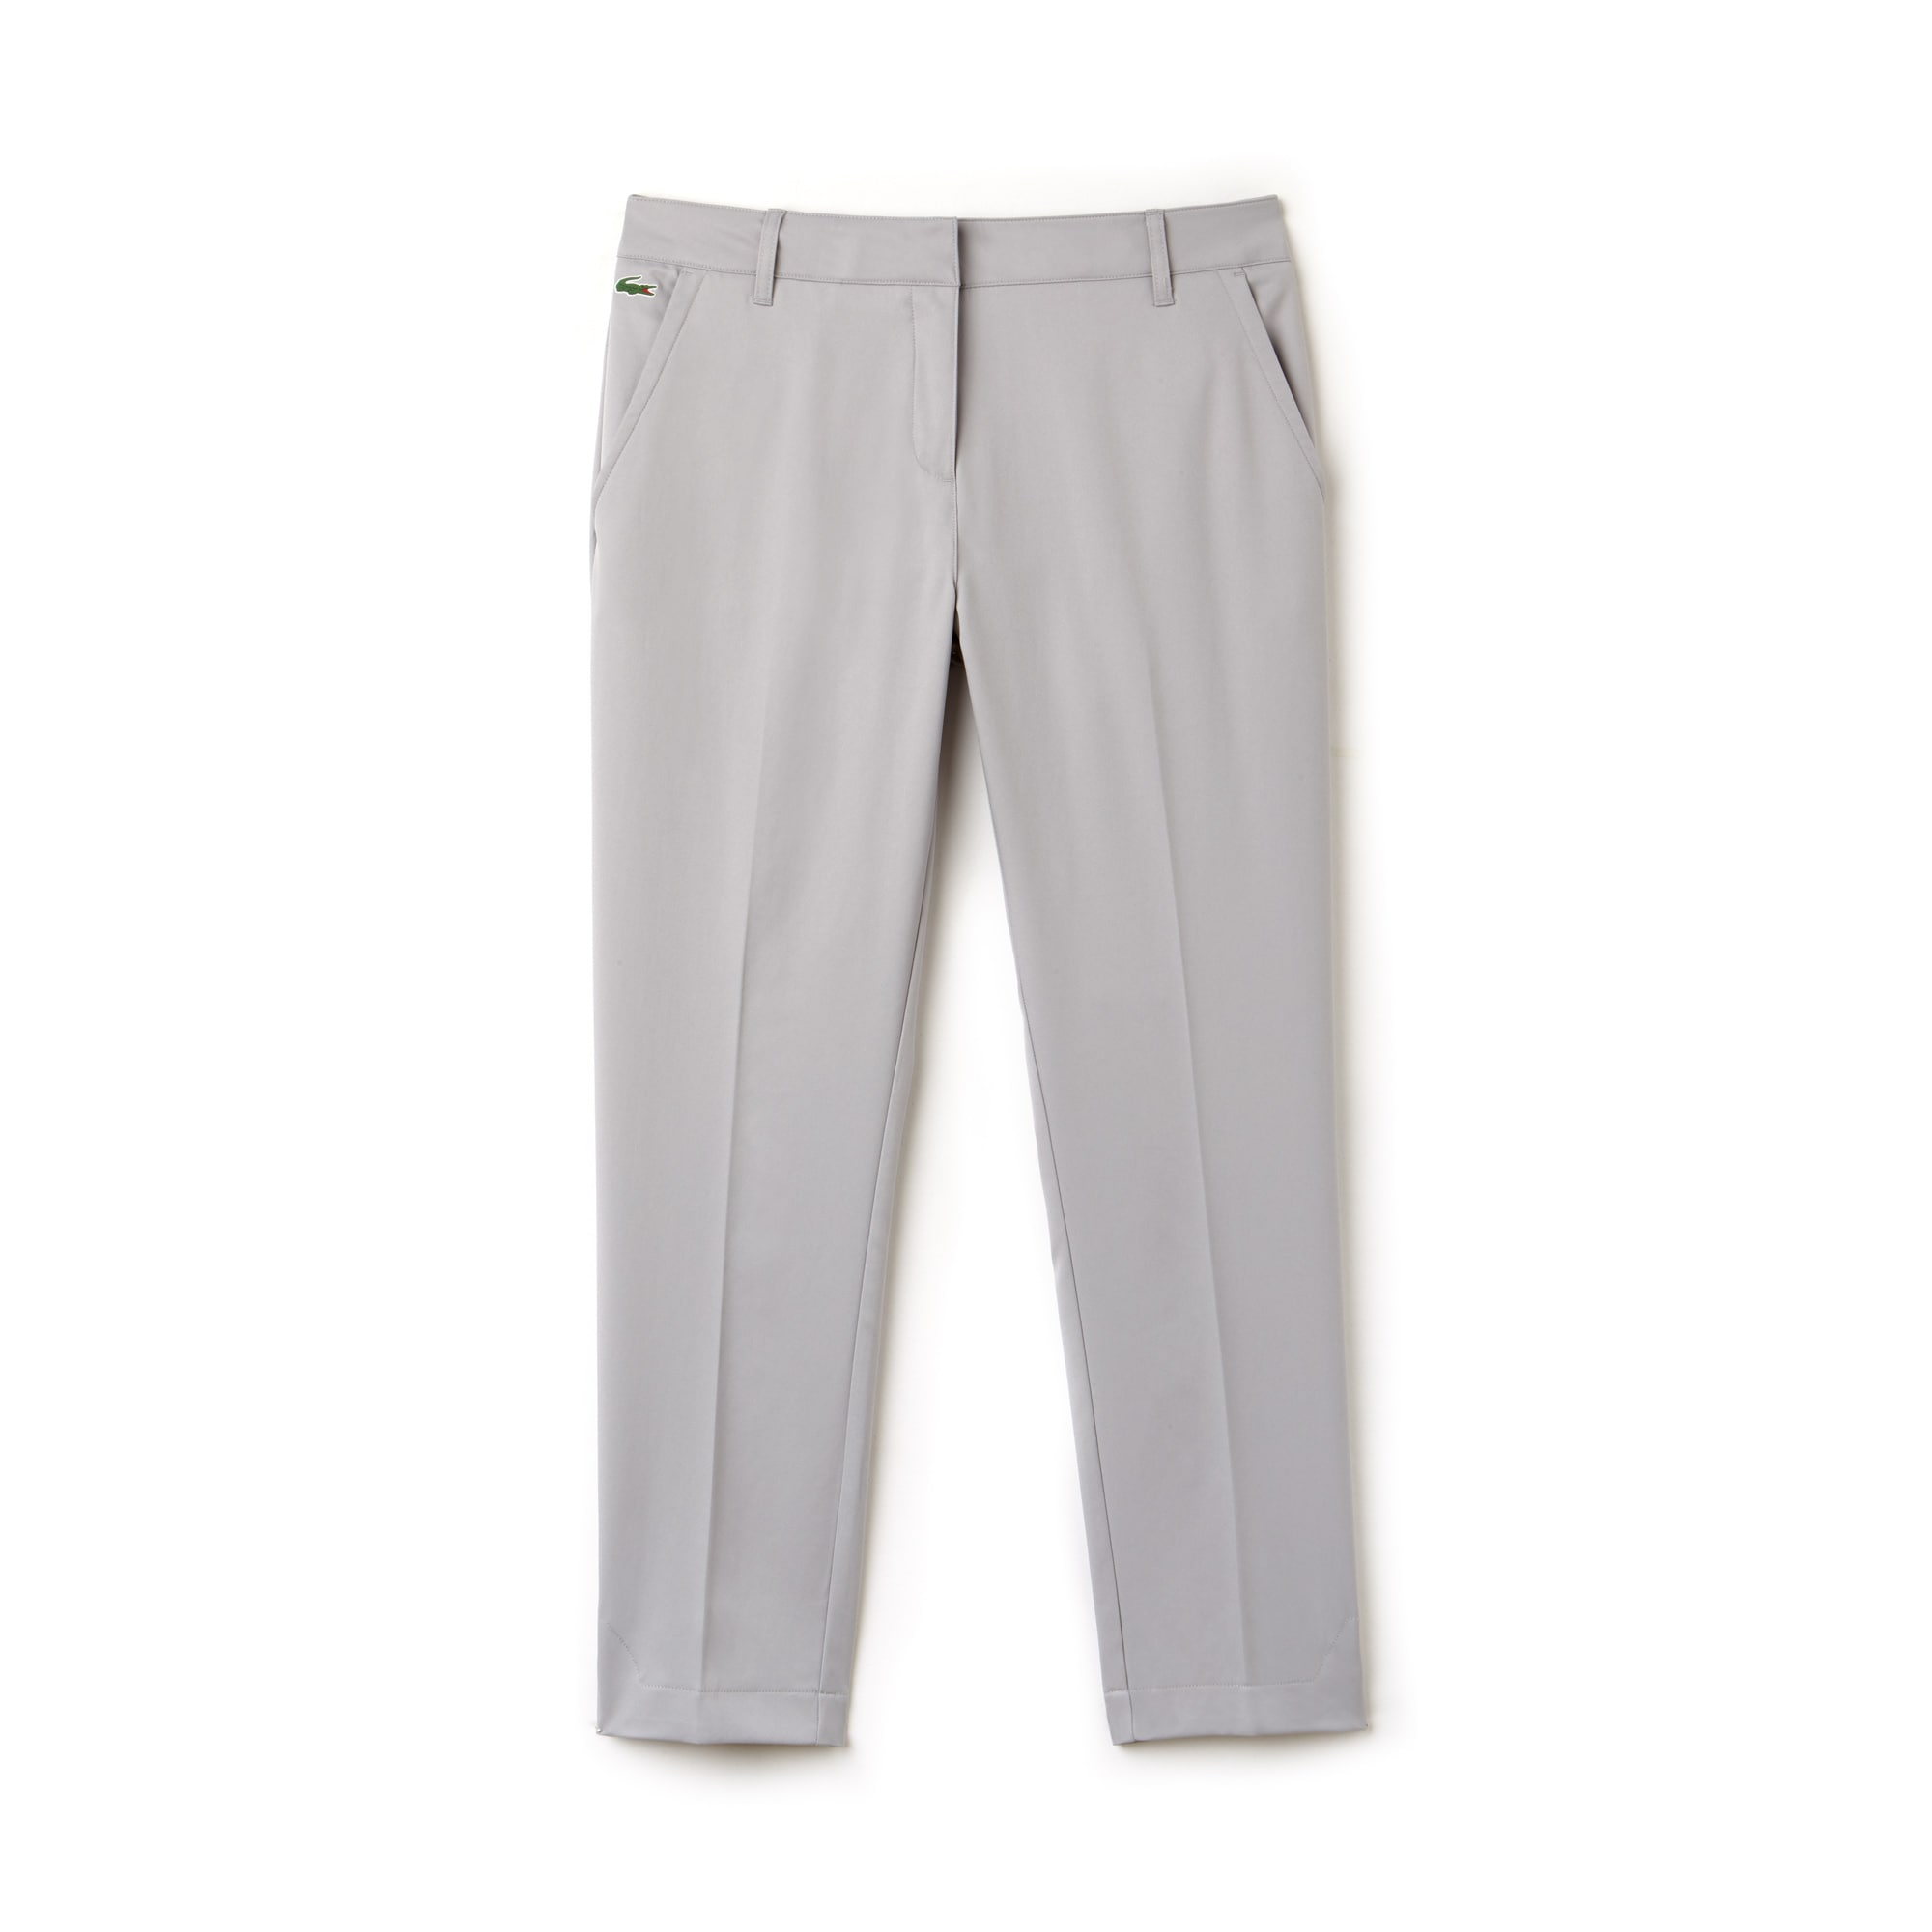 Pantalon à pinces Golf Lacoste SPORT en gabardine technique Édition Ryder Cup